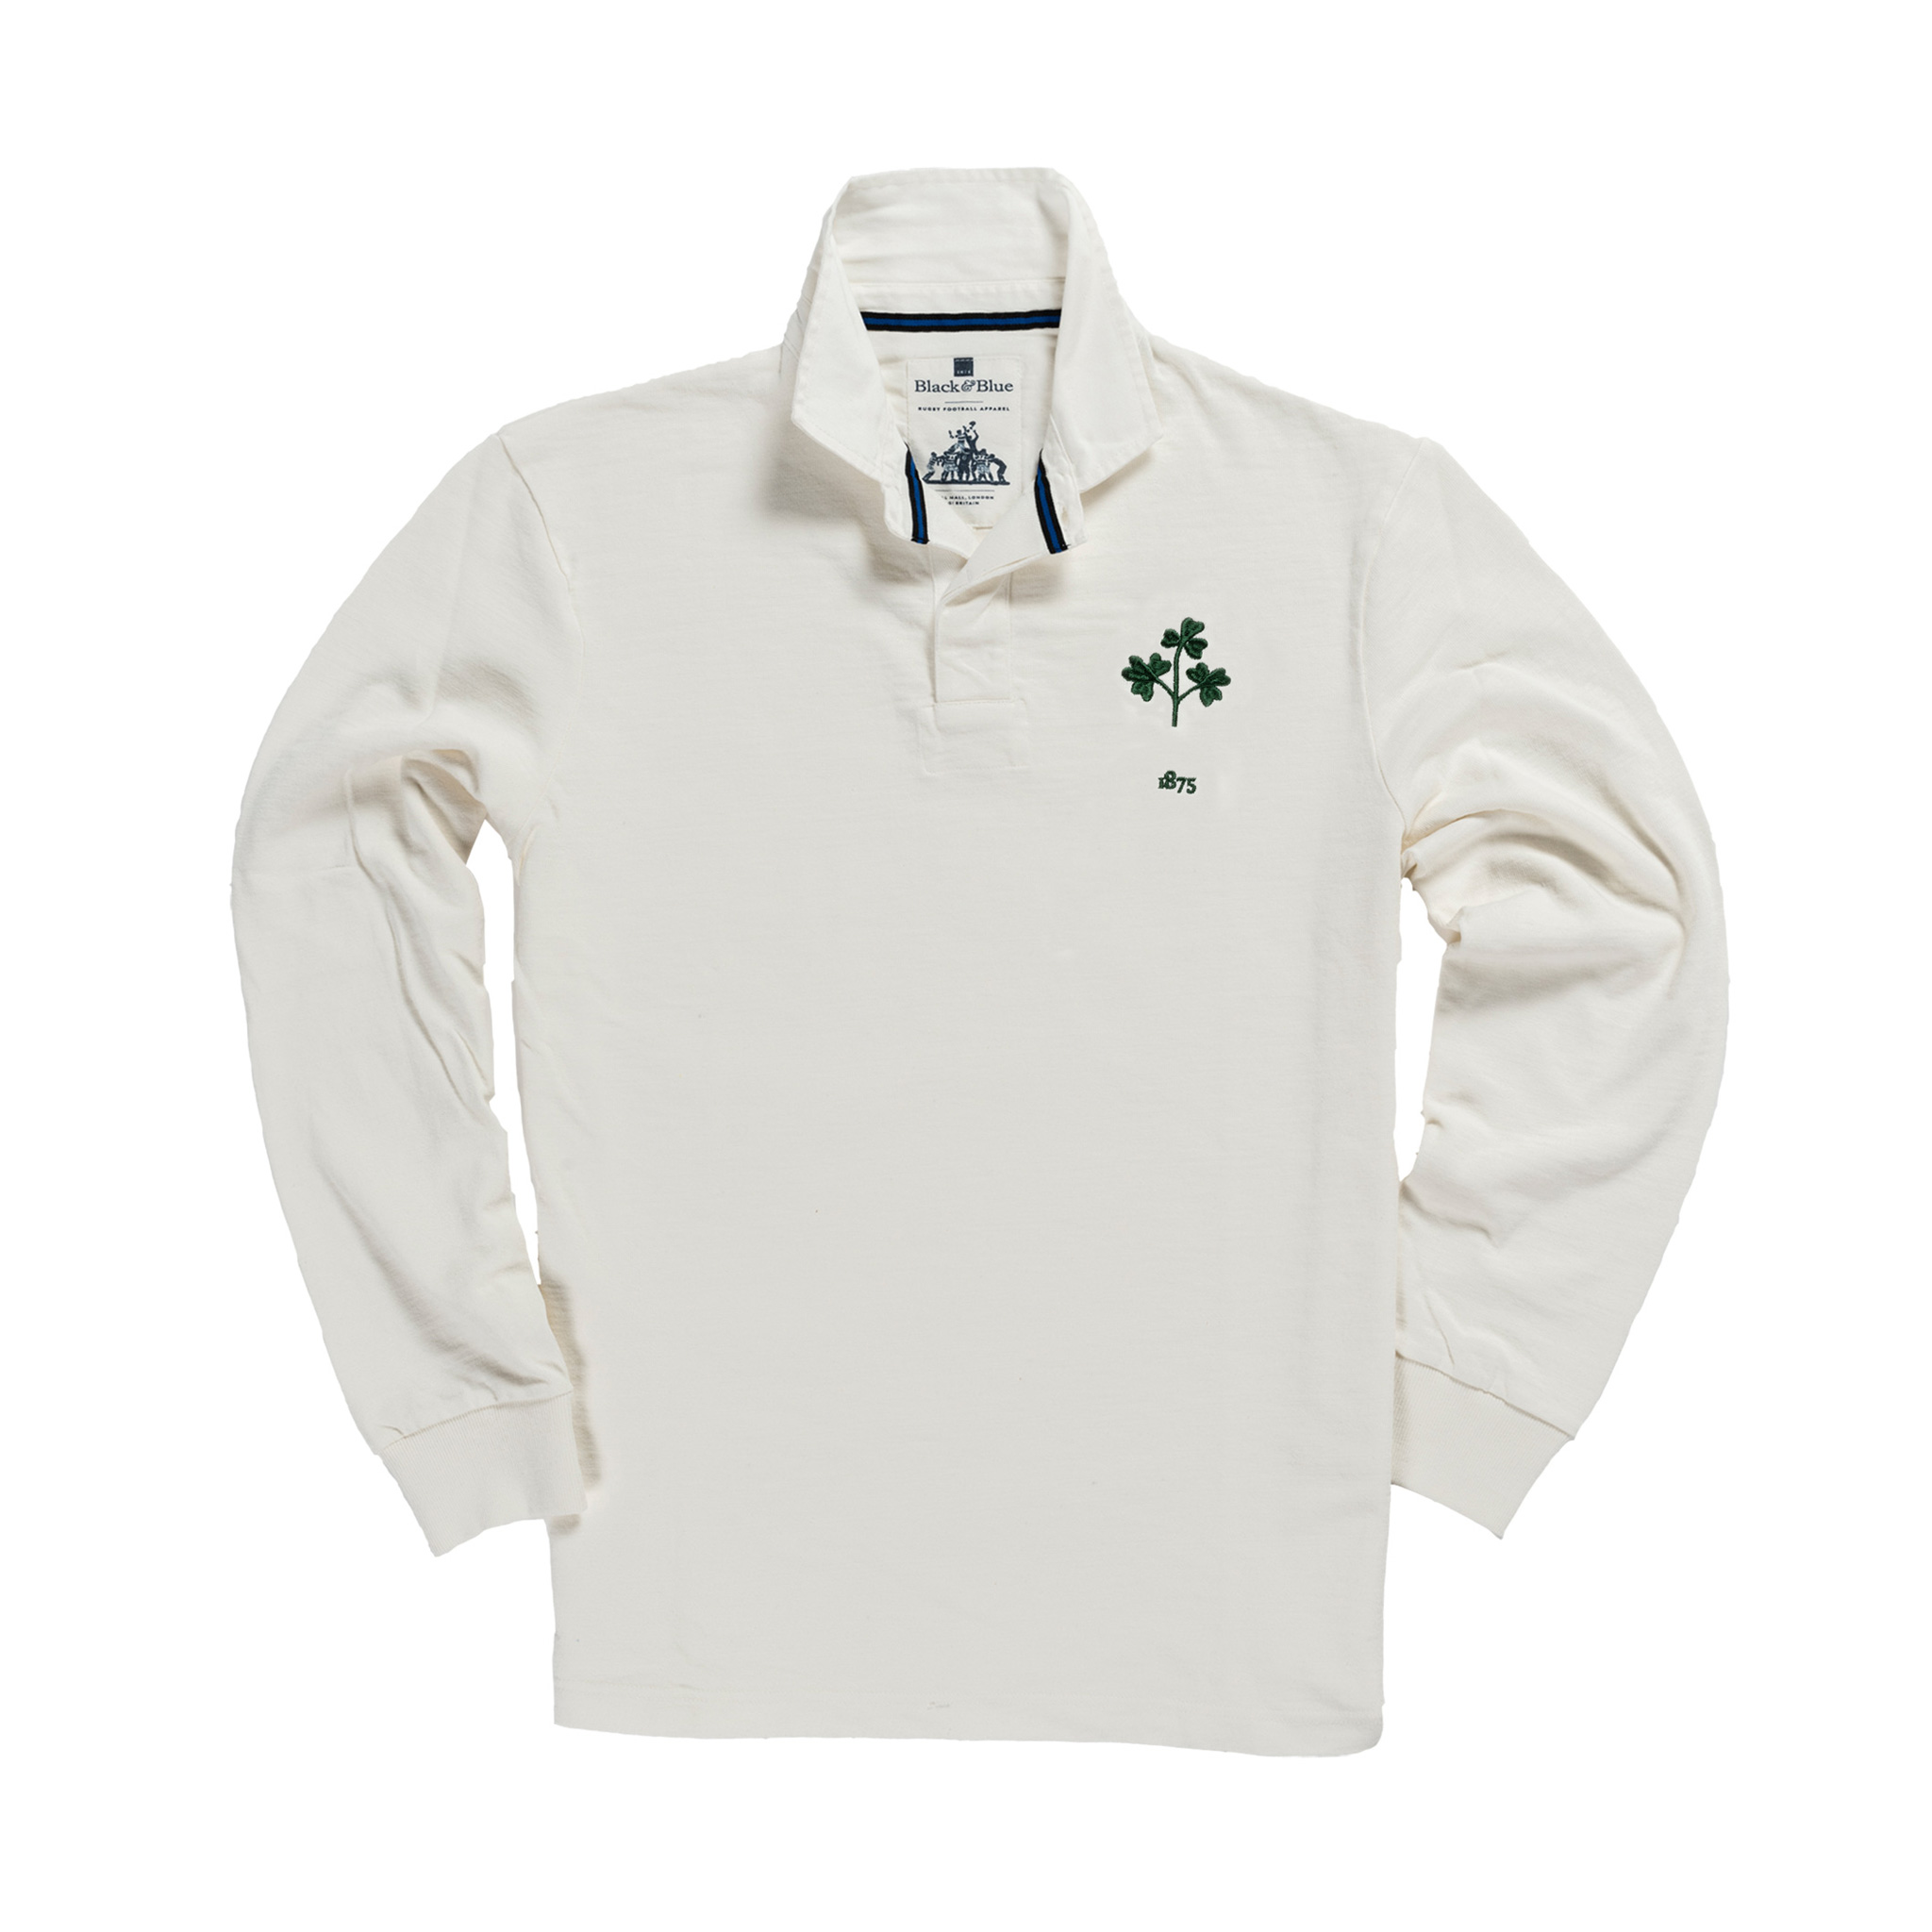 Ireland 1875 Vintage Rugby Away Shirt